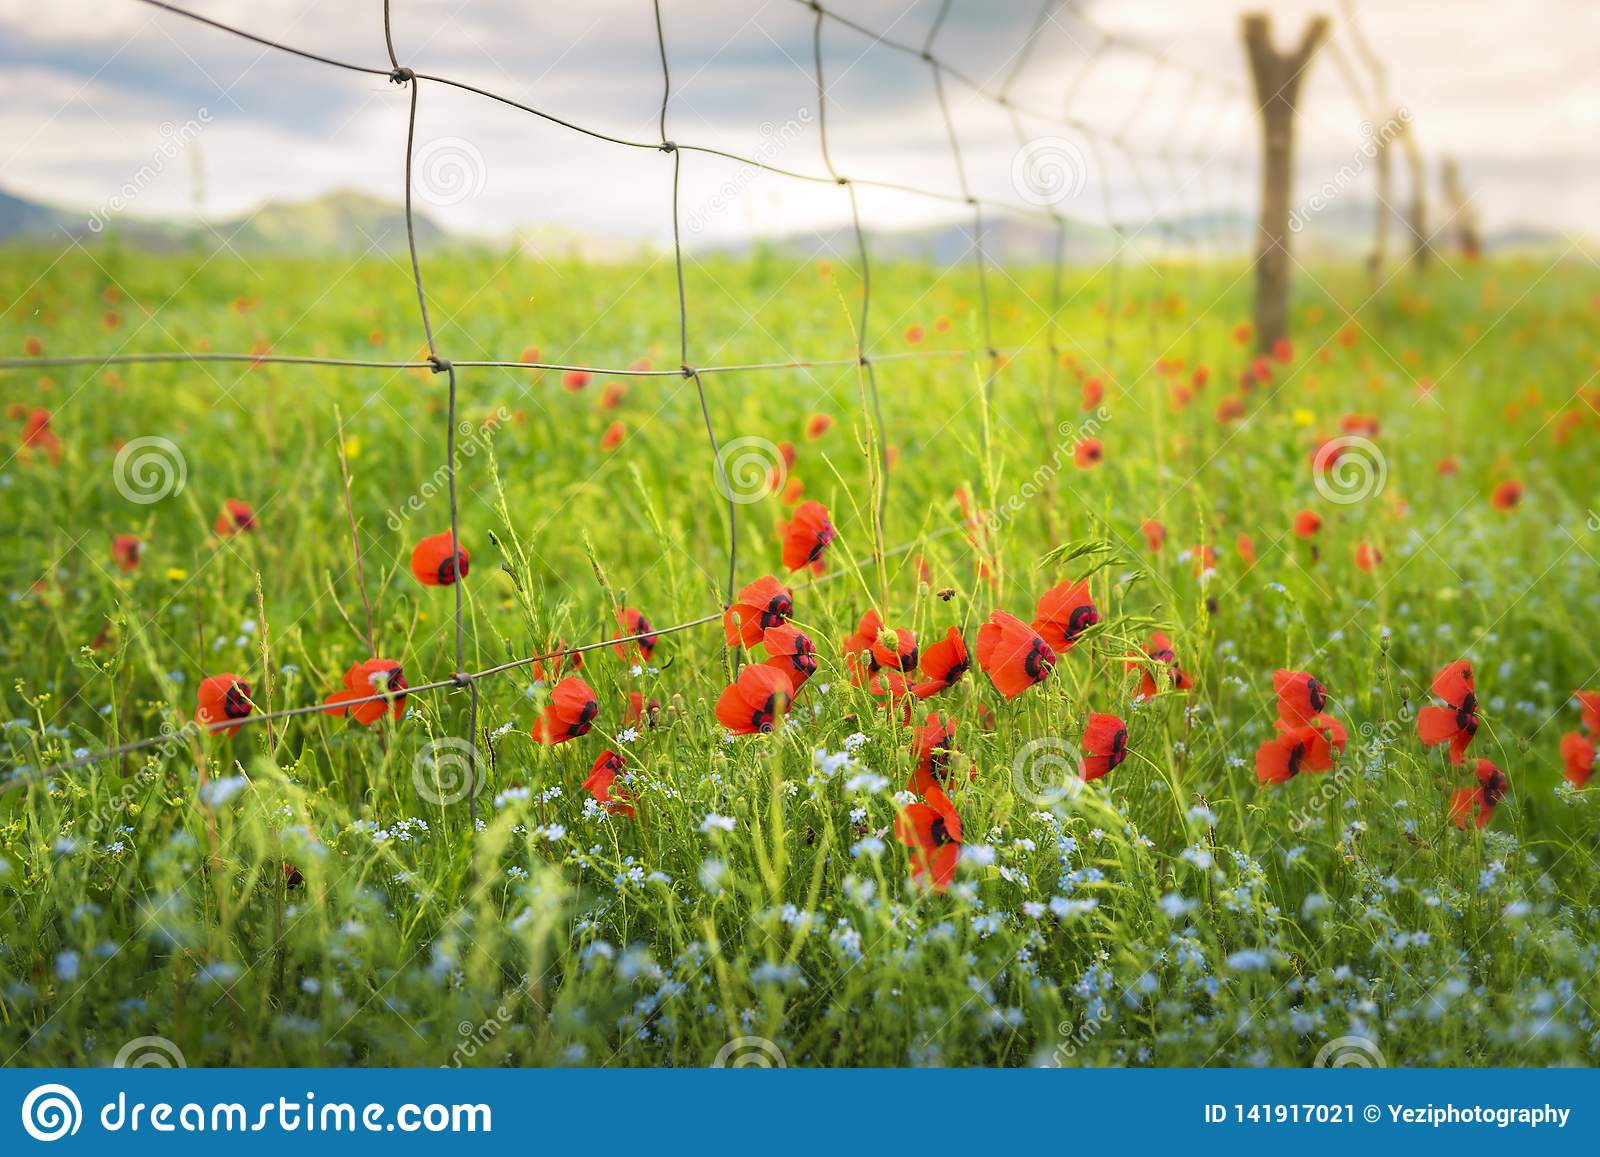 The flowers in the fields